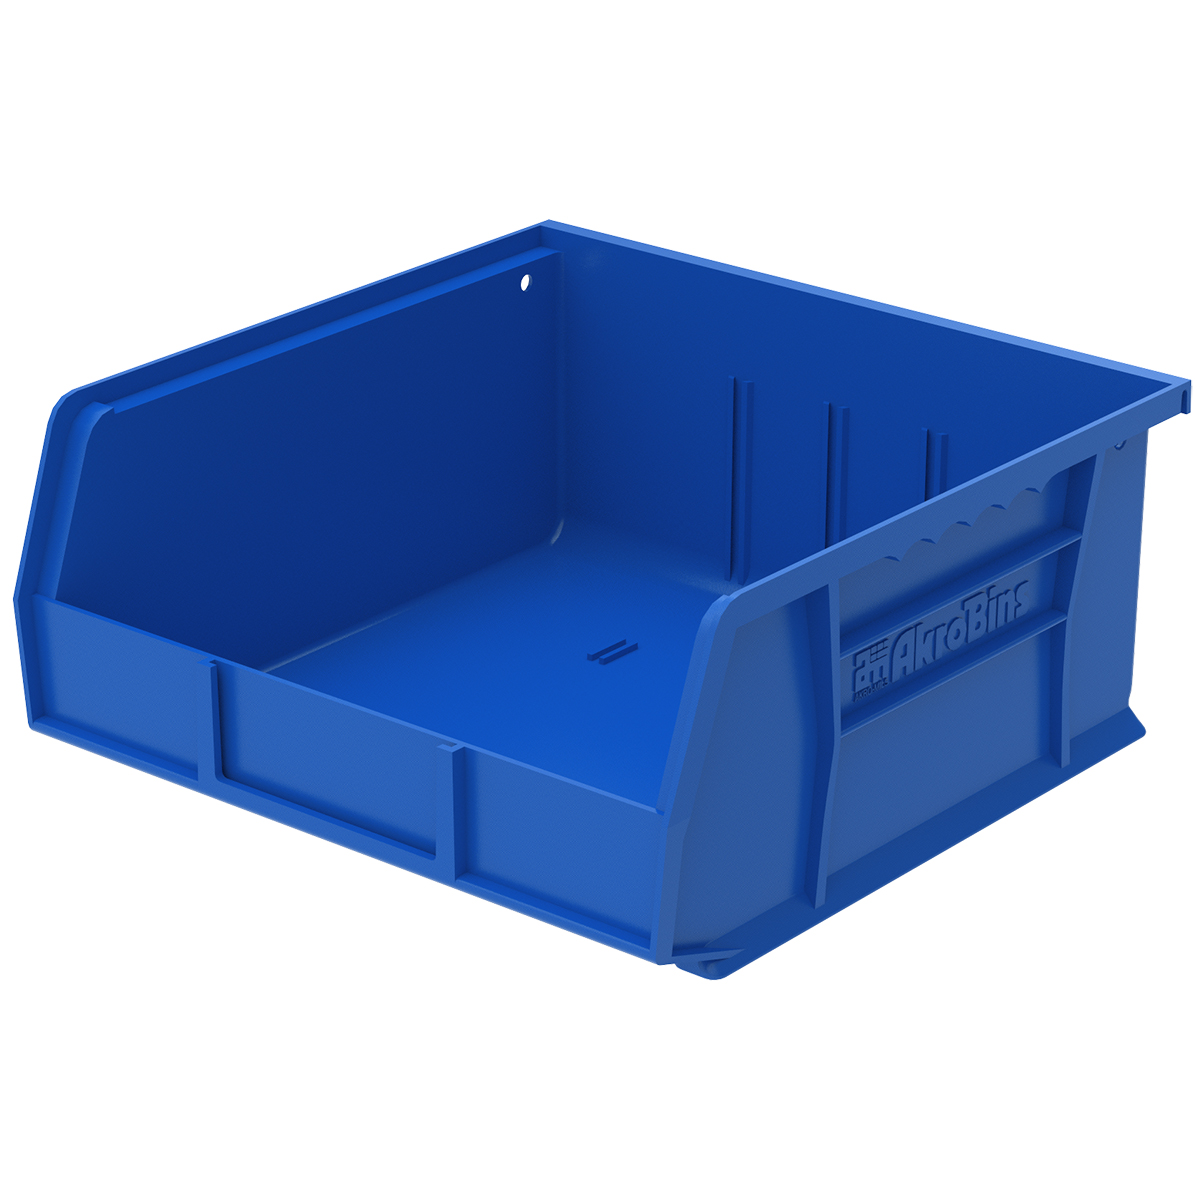 AkroBin 10-7/8 x 11 x 5, Blue (30235BLUE).  This item sold in carton quantities of 6.